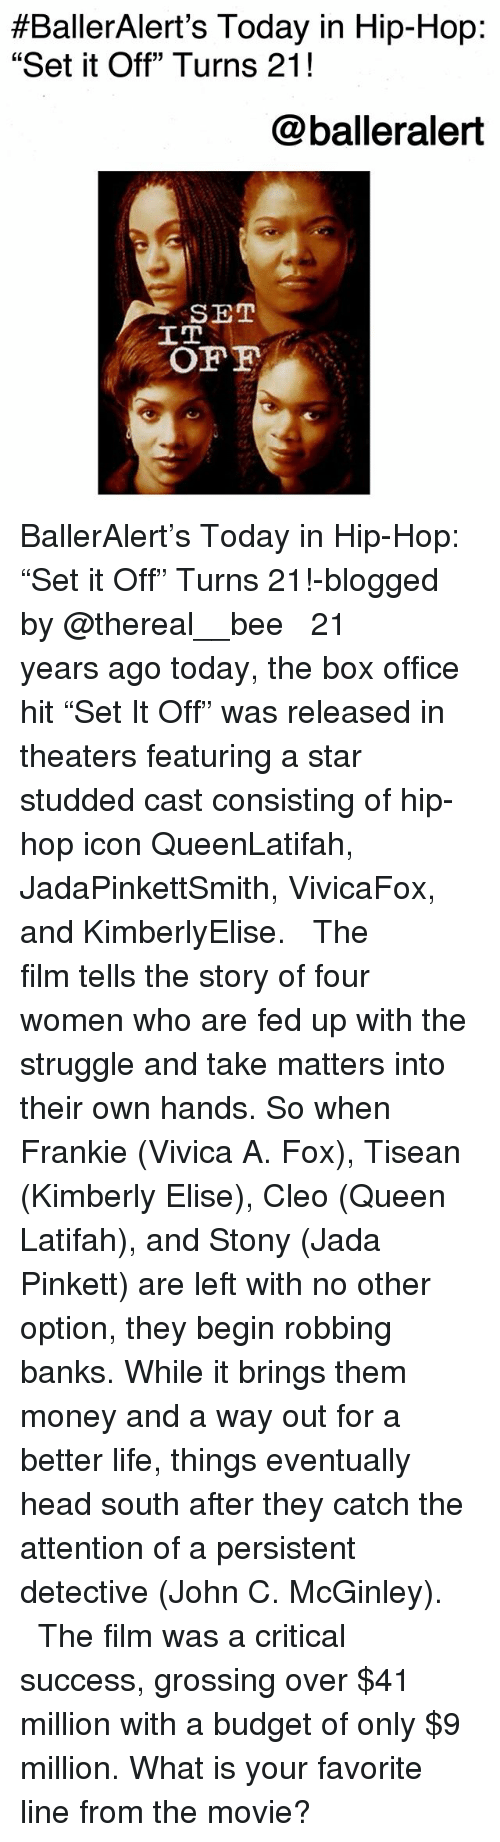 """Queen Latifah:  #BallerAlert's Today in Hip-Hop:  """"Set it Off"""" Turns 21!  @balleralert  SET  IT BallerAlert's Today in Hip-Hop: """"Set it Off"""" Turns 21!-blogged by @thereal__bee ⠀⠀⠀⠀⠀⠀⠀⠀⠀ ⠀⠀ 21 years ago today, the box office hit """"Set It Off"""" was released in theaters featuring a star studded cast consisting of hip-hop icon QueenLatifah, JadaPinkettSmith, VivicaFox, and KimberlyElise. ⠀⠀⠀⠀⠀⠀⠀⠀⠀ ⠀⠀ The film tells the story of four women who are fed up with the struggle and take matters into their own hands. So when Frankie (Vivica A. Fox), Tisean (Kimberly Elise), Cleo (Queen Latifah), and Stony (Jada Pinkett) are left with no other option, they begin robbing banks. While it brings them money and a way out for a better life, things eventually head south after they catch the attention of a persistent detective (John C. McGinley). ⠀⠀⠀⠀⠀⠀⠀⠀⠀ ⠀⠀ The film was a critical success, grossing over $41 million with a budget of only $9 million. What is your favorite line from the movie?"""